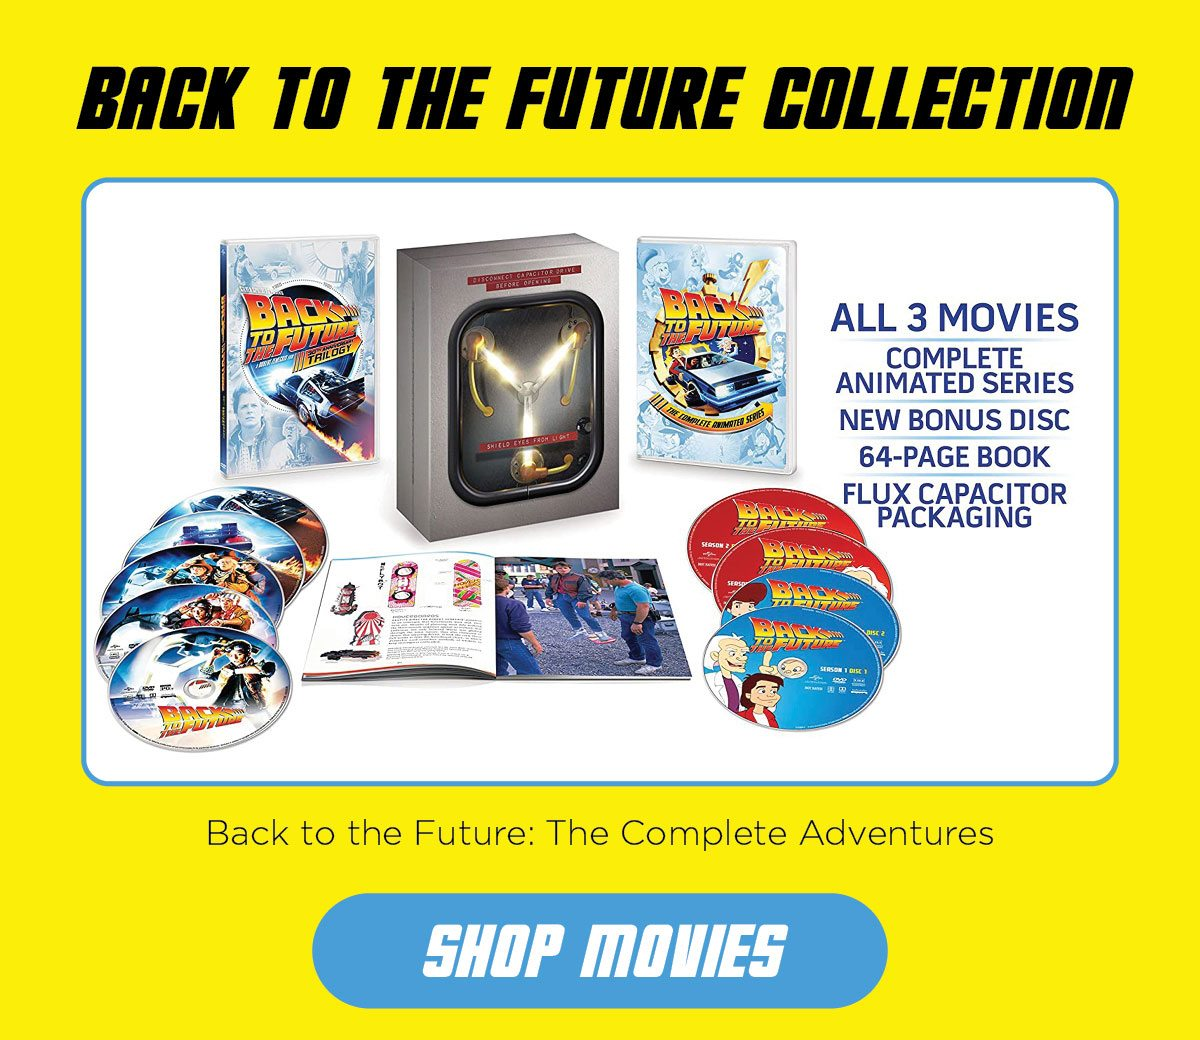 The Back to The Future Collection